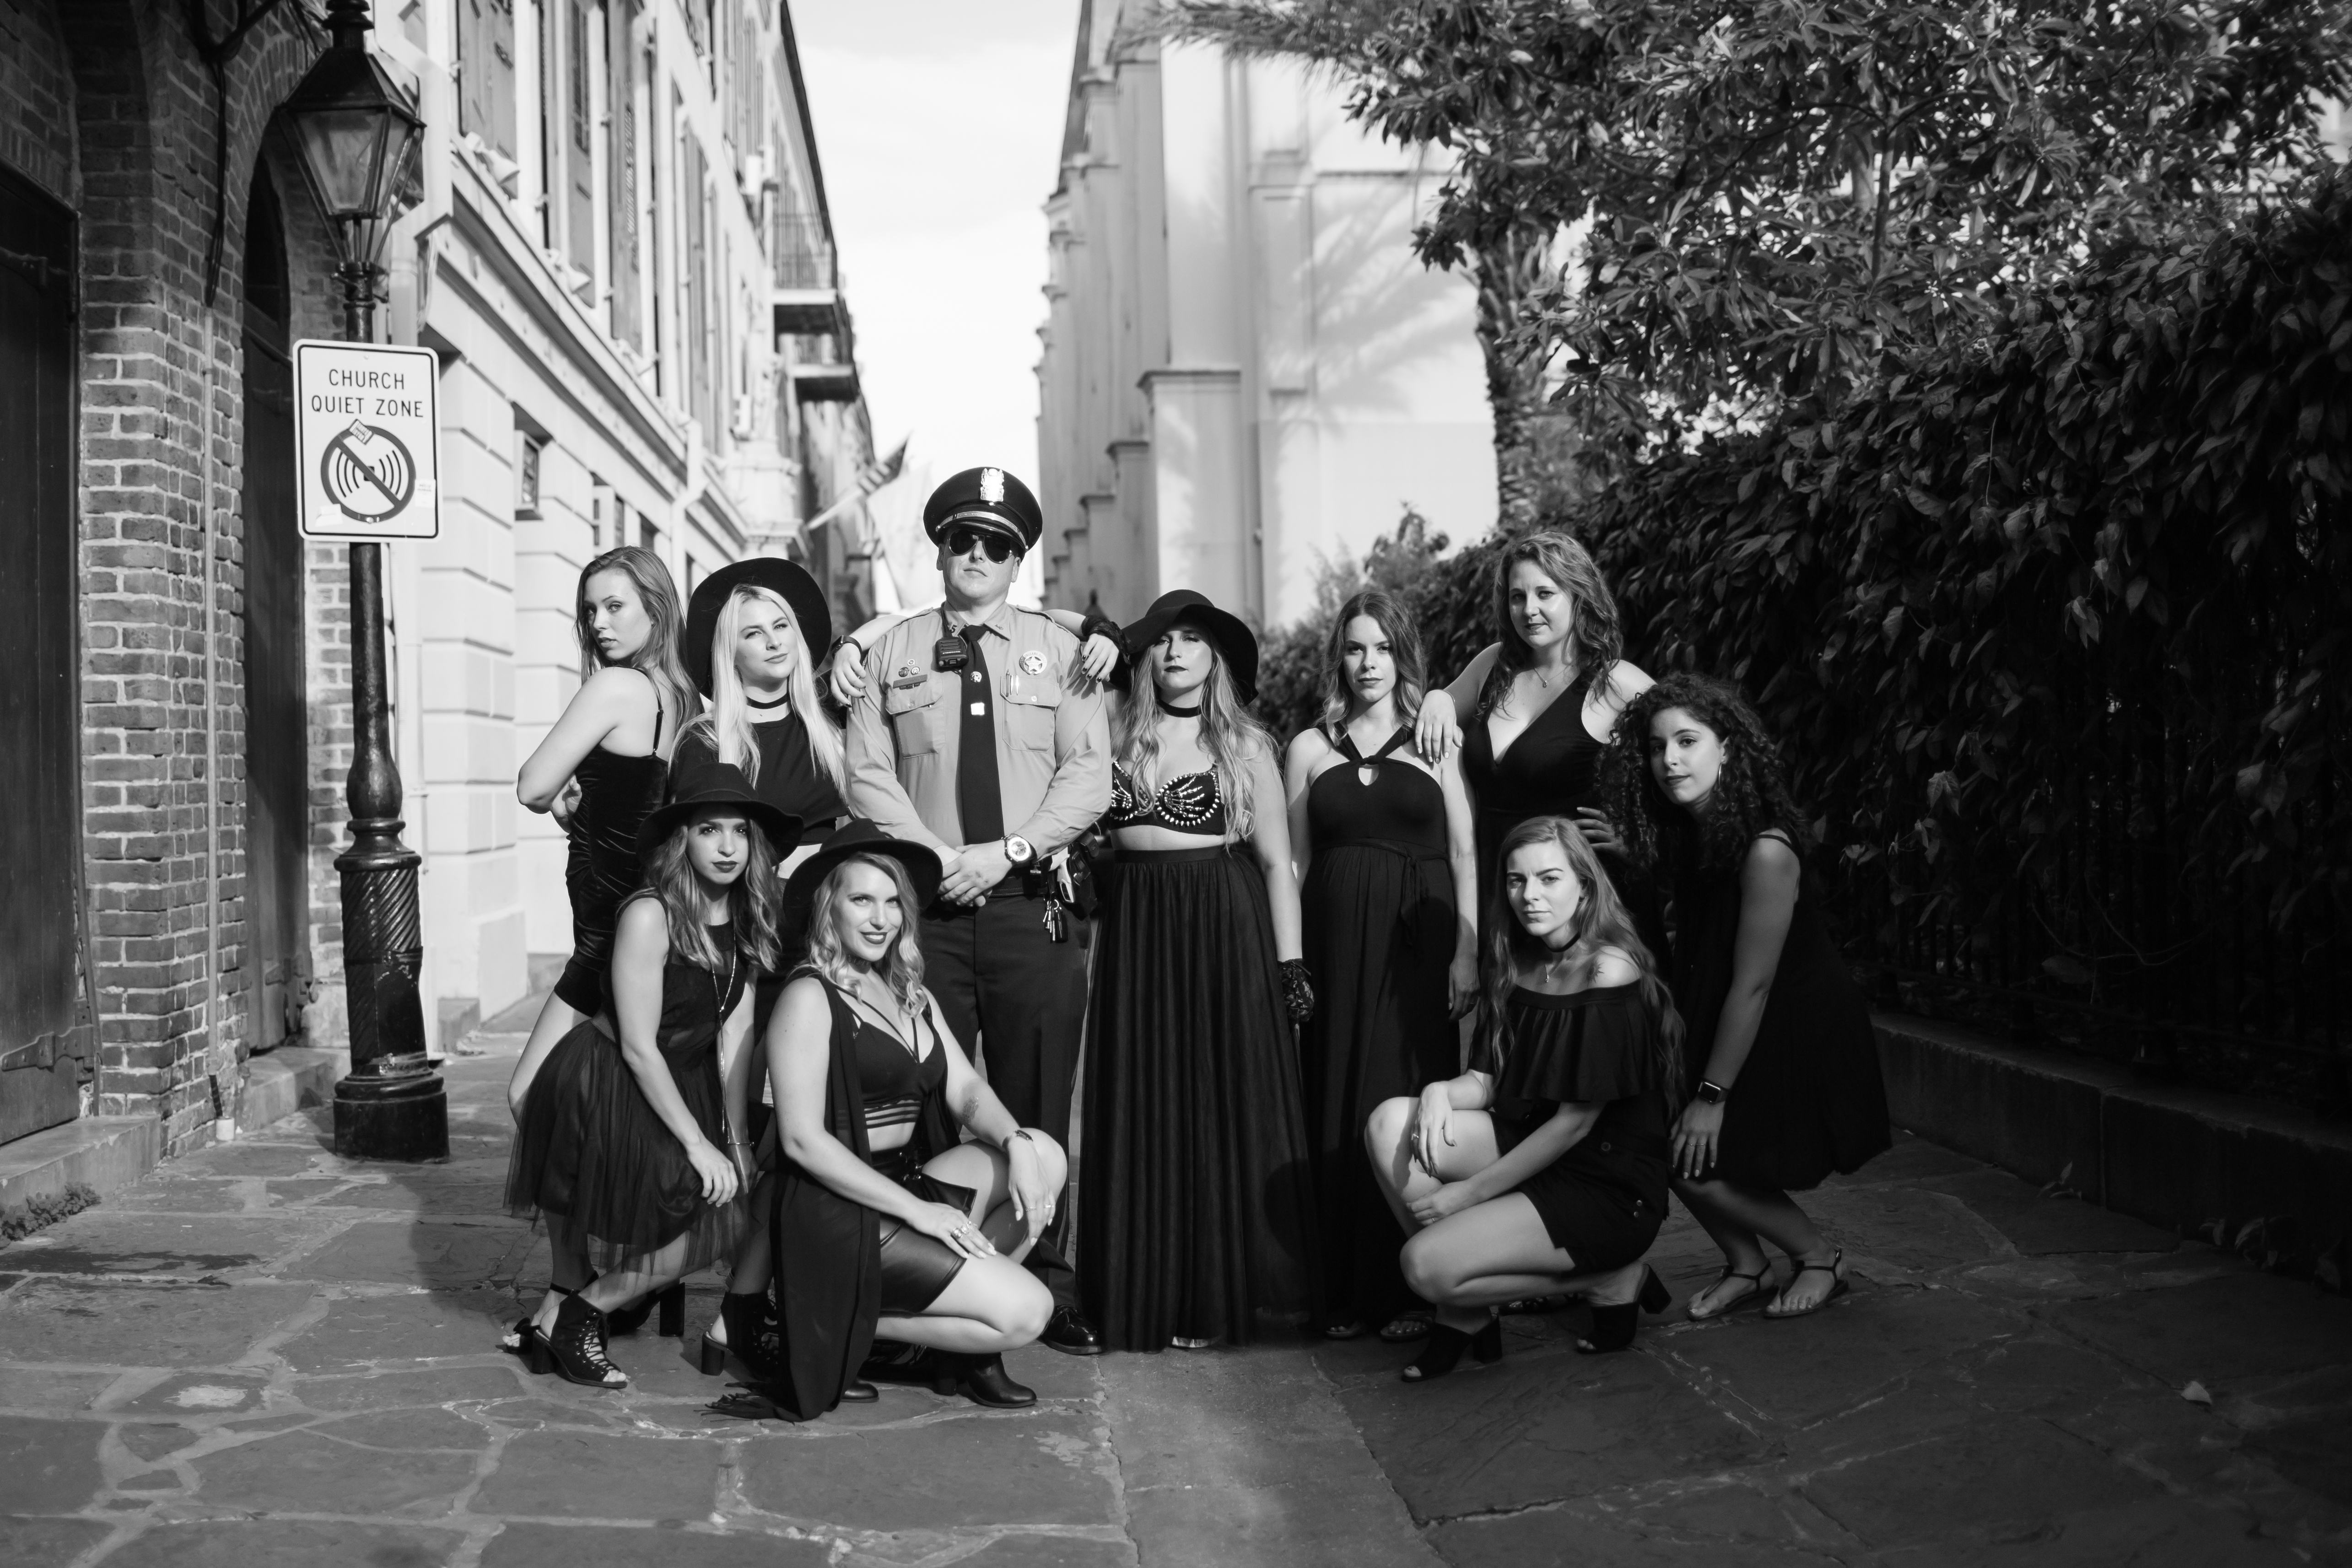 Police Officer gets in the moody poses with alley shots. Looks like these all black beauties cast a spell on everyone they met this bachelorette weekend.